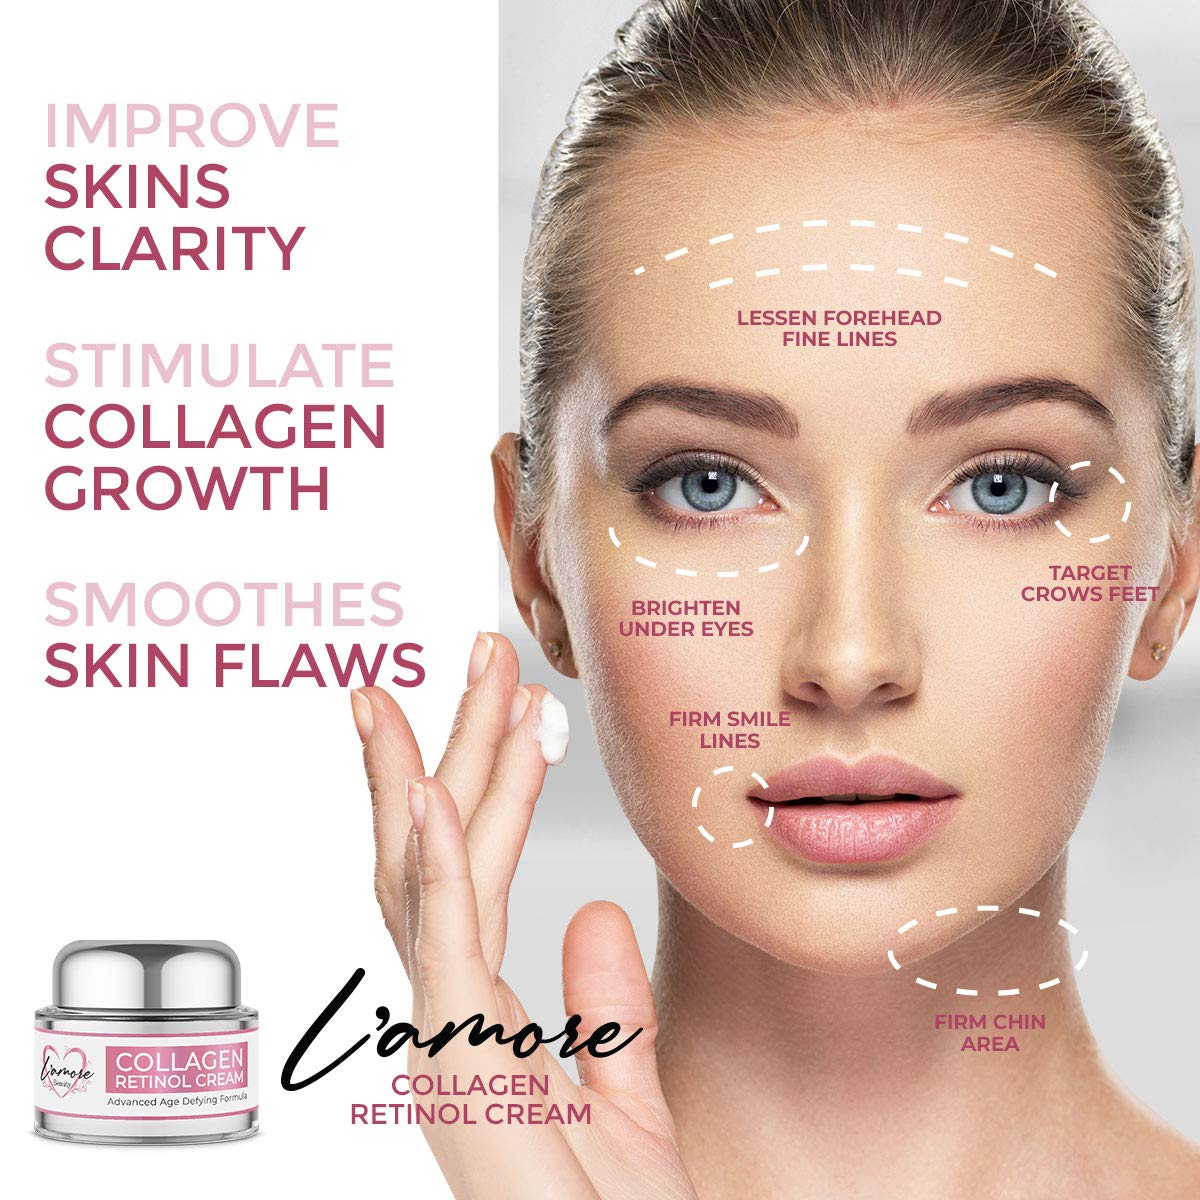 Beauty products for women 2019